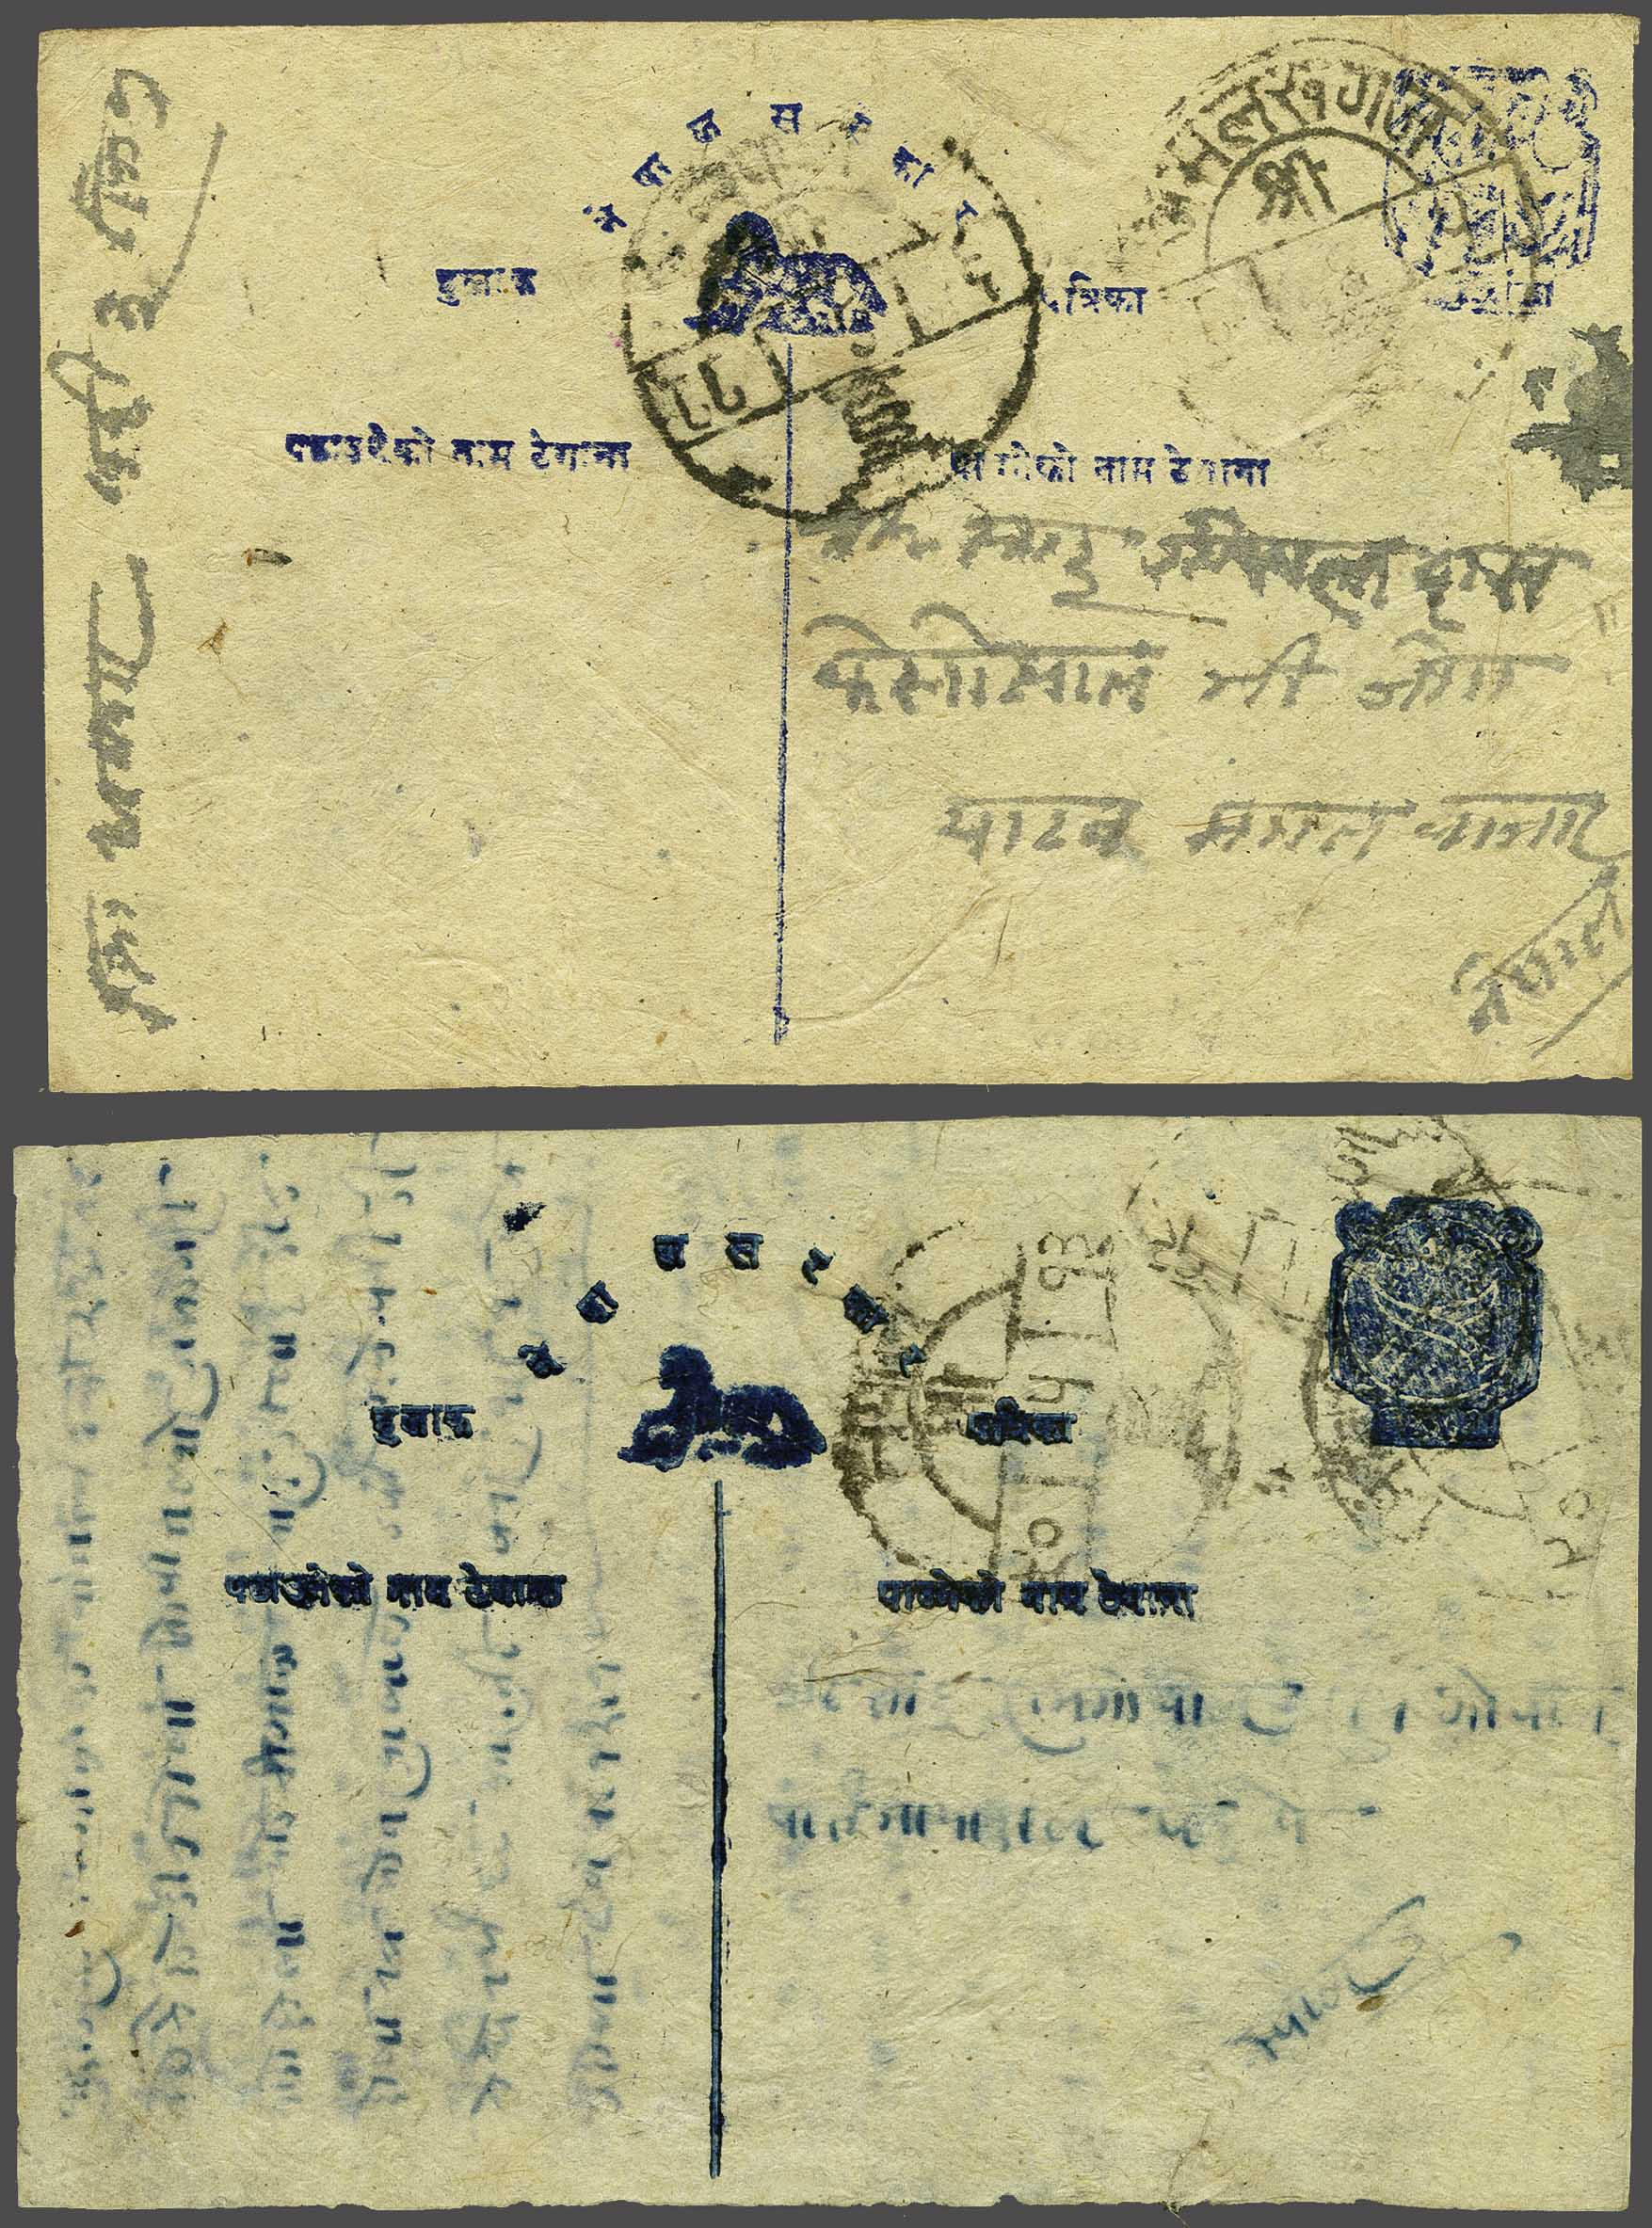 Lot 49 - Great Britain and former colonies Nepal -  Corinphila Veilingen Auction 245-246 Day 1 - Nepal - The Dick van der Wateren Collection, Foreign countries - Single lots, Picture postcards